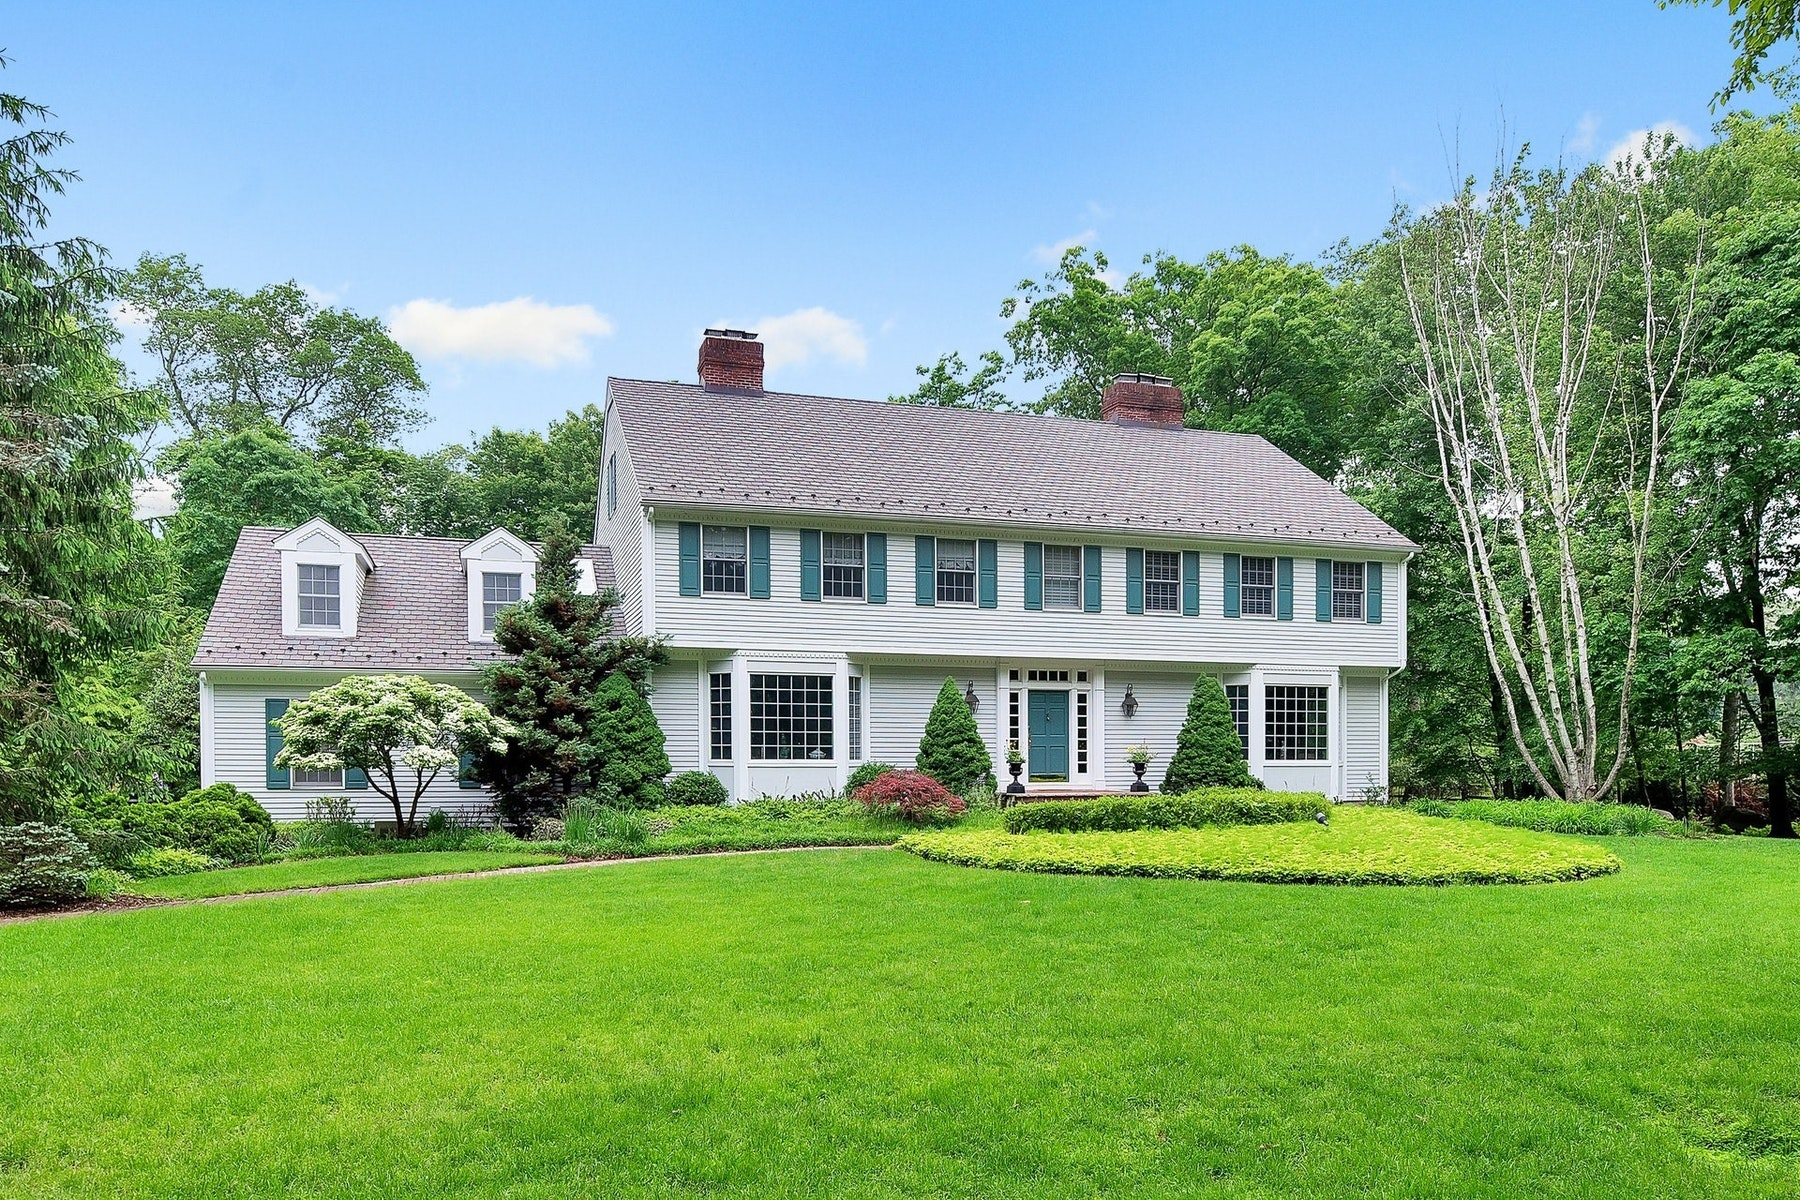 Single Family Homes for Sale at Beautiful CH Colonial 21 Cameron Rd. Saddle River, New Jersey 07458 United States